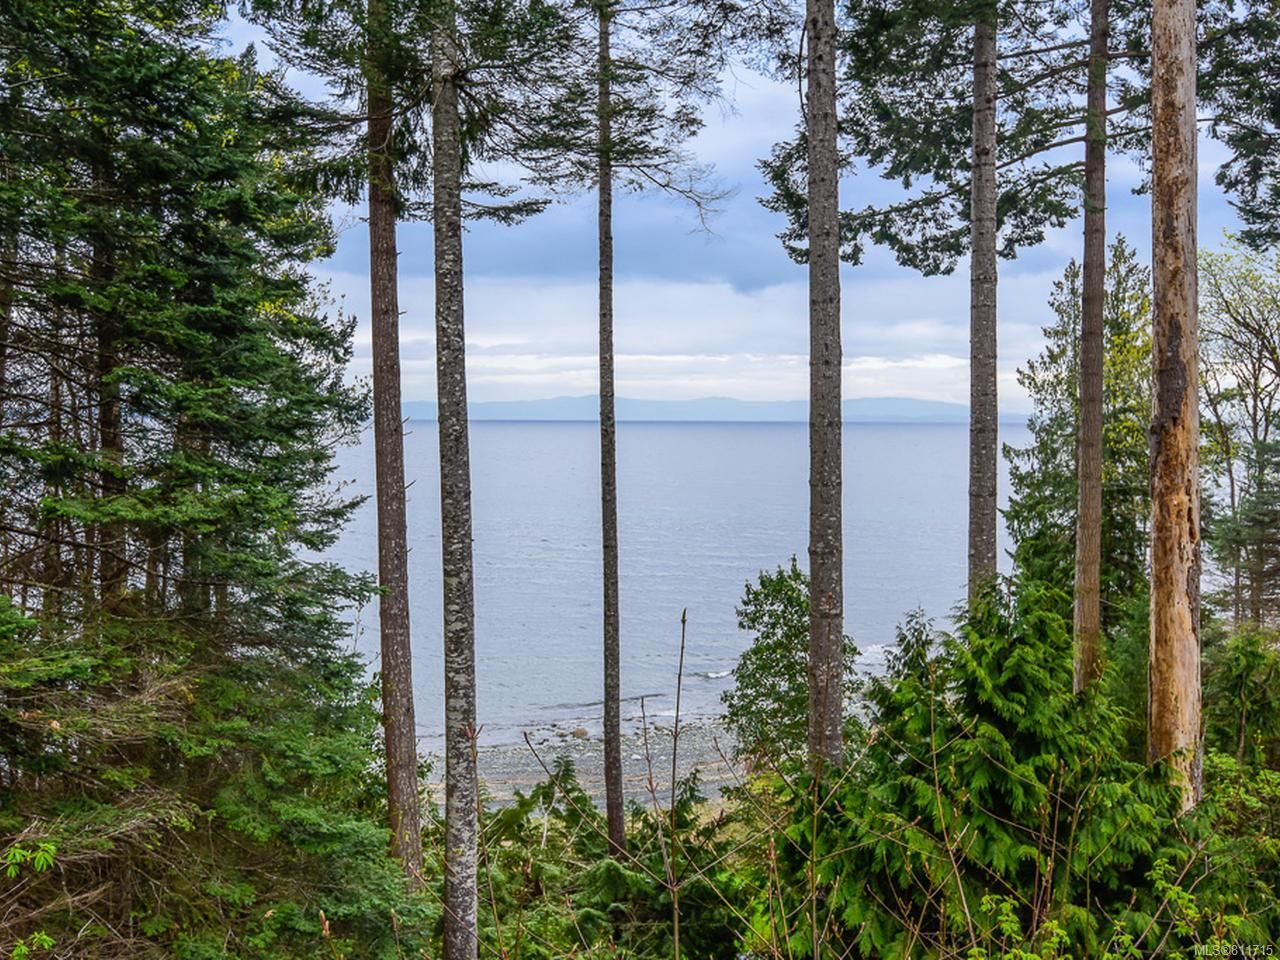 Main Photo: 4651 Maple Guard Dr in BOWSER: PQ Bowser/Deep Bay House for sale (Parksville/Qualicum)  : MLS®# 811715